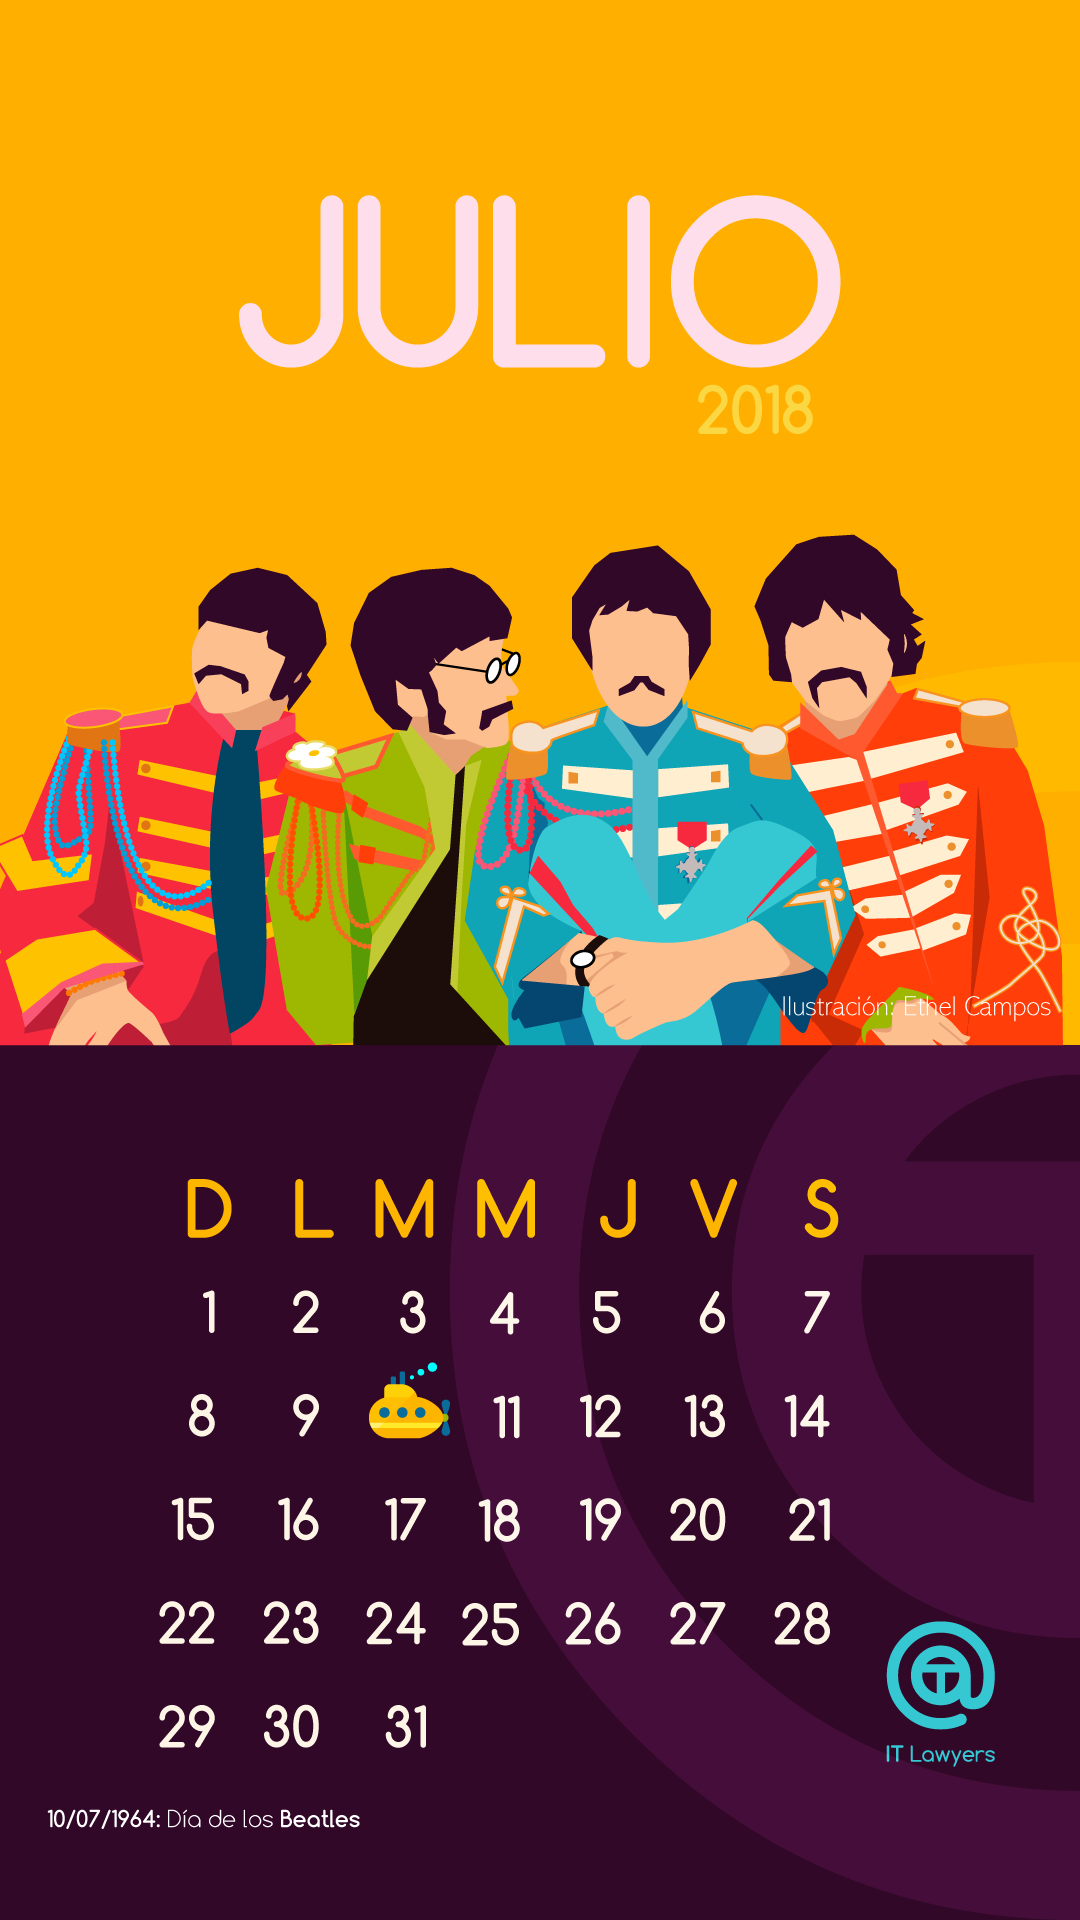 Calendario julio dedicado a los Beatles